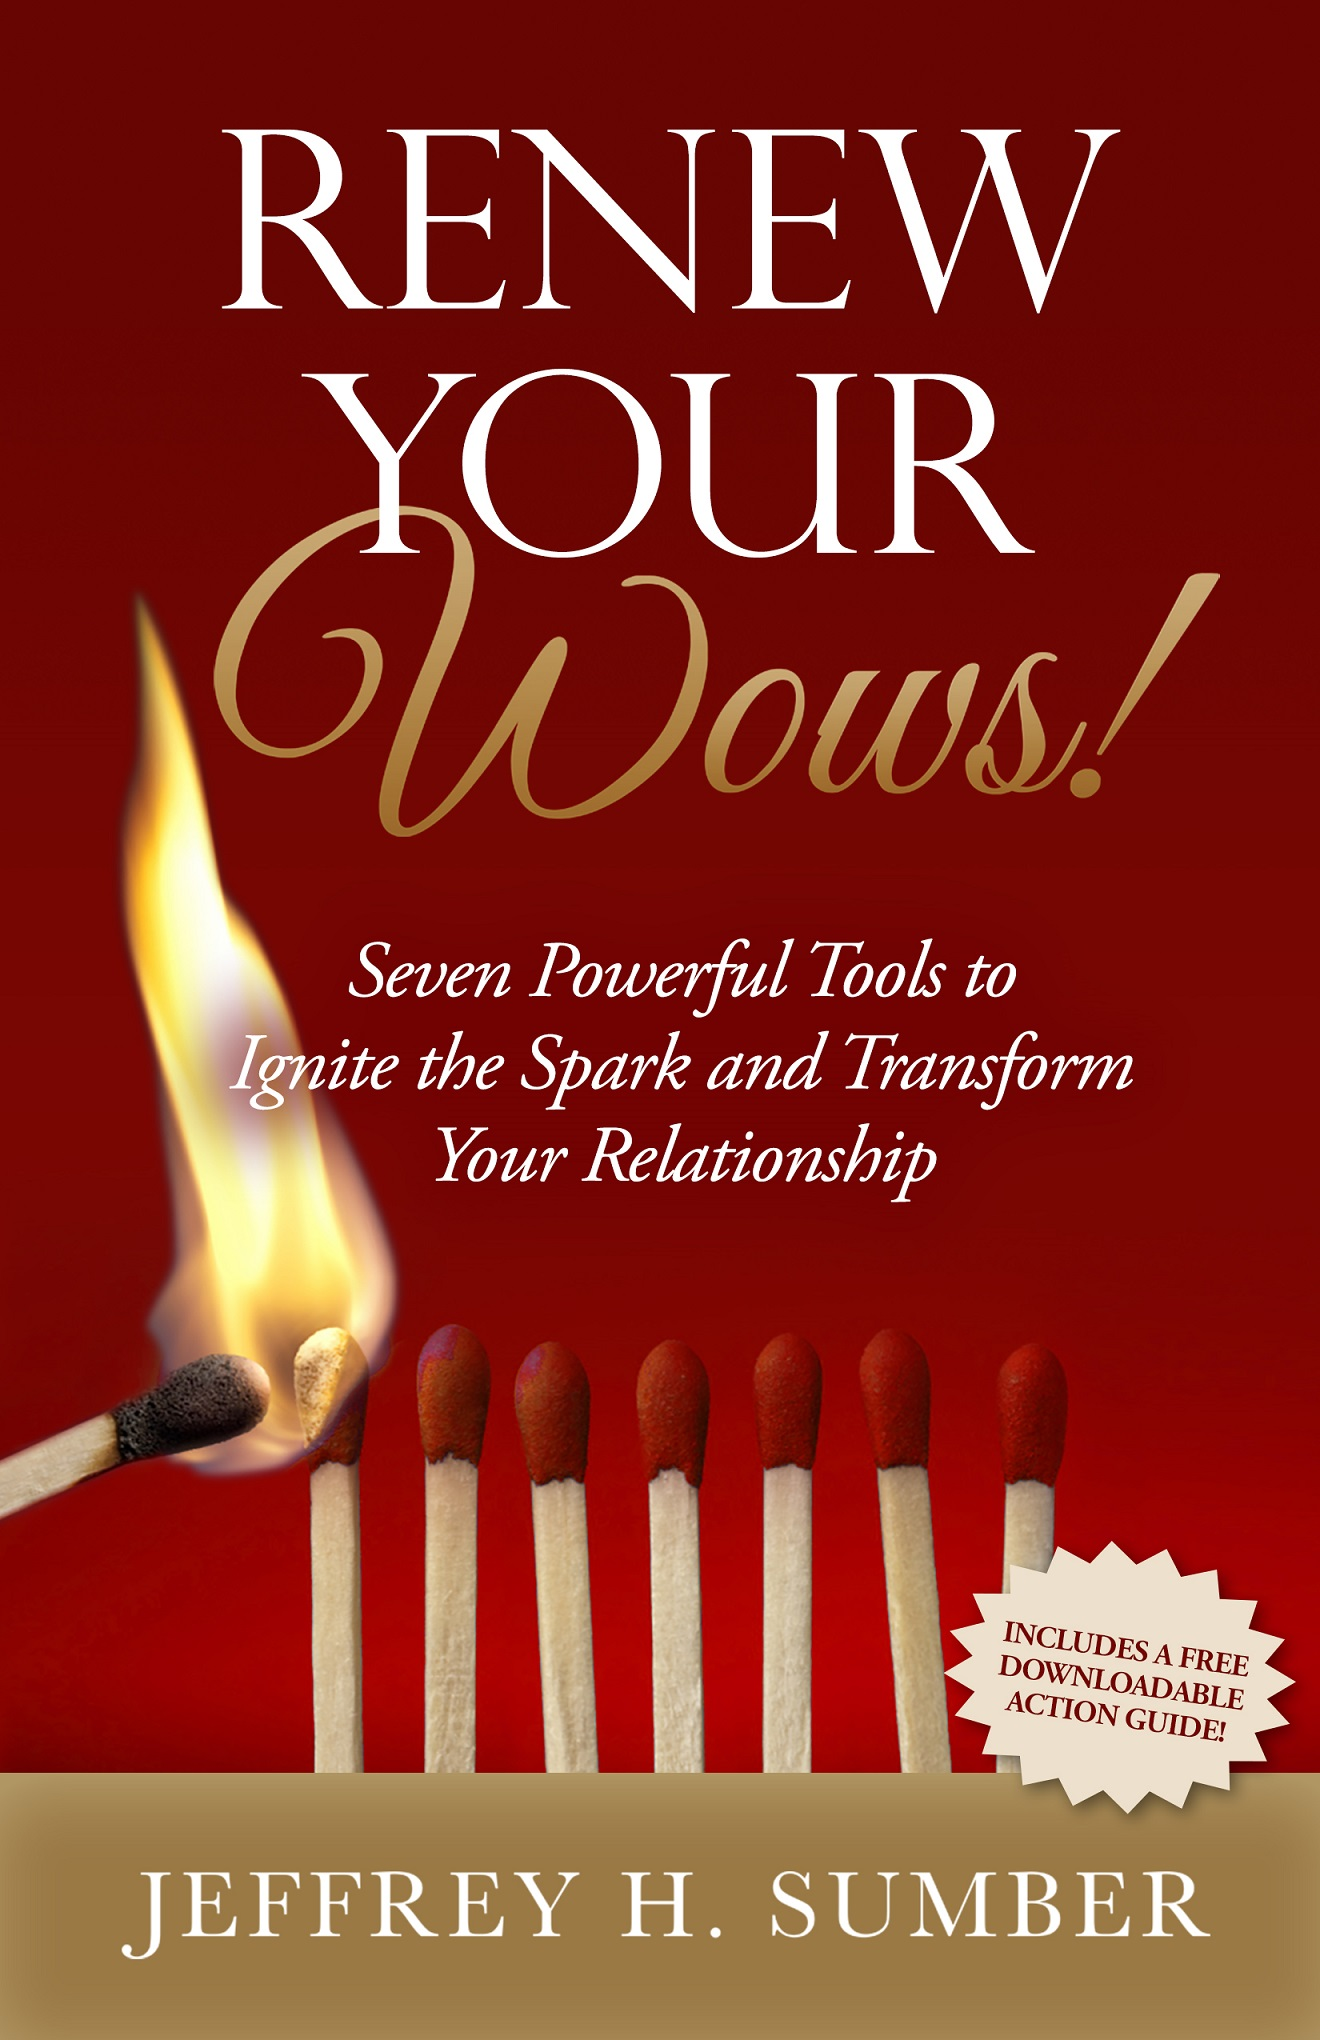 Renew Your Wows! by Jeffrey H. Sumber